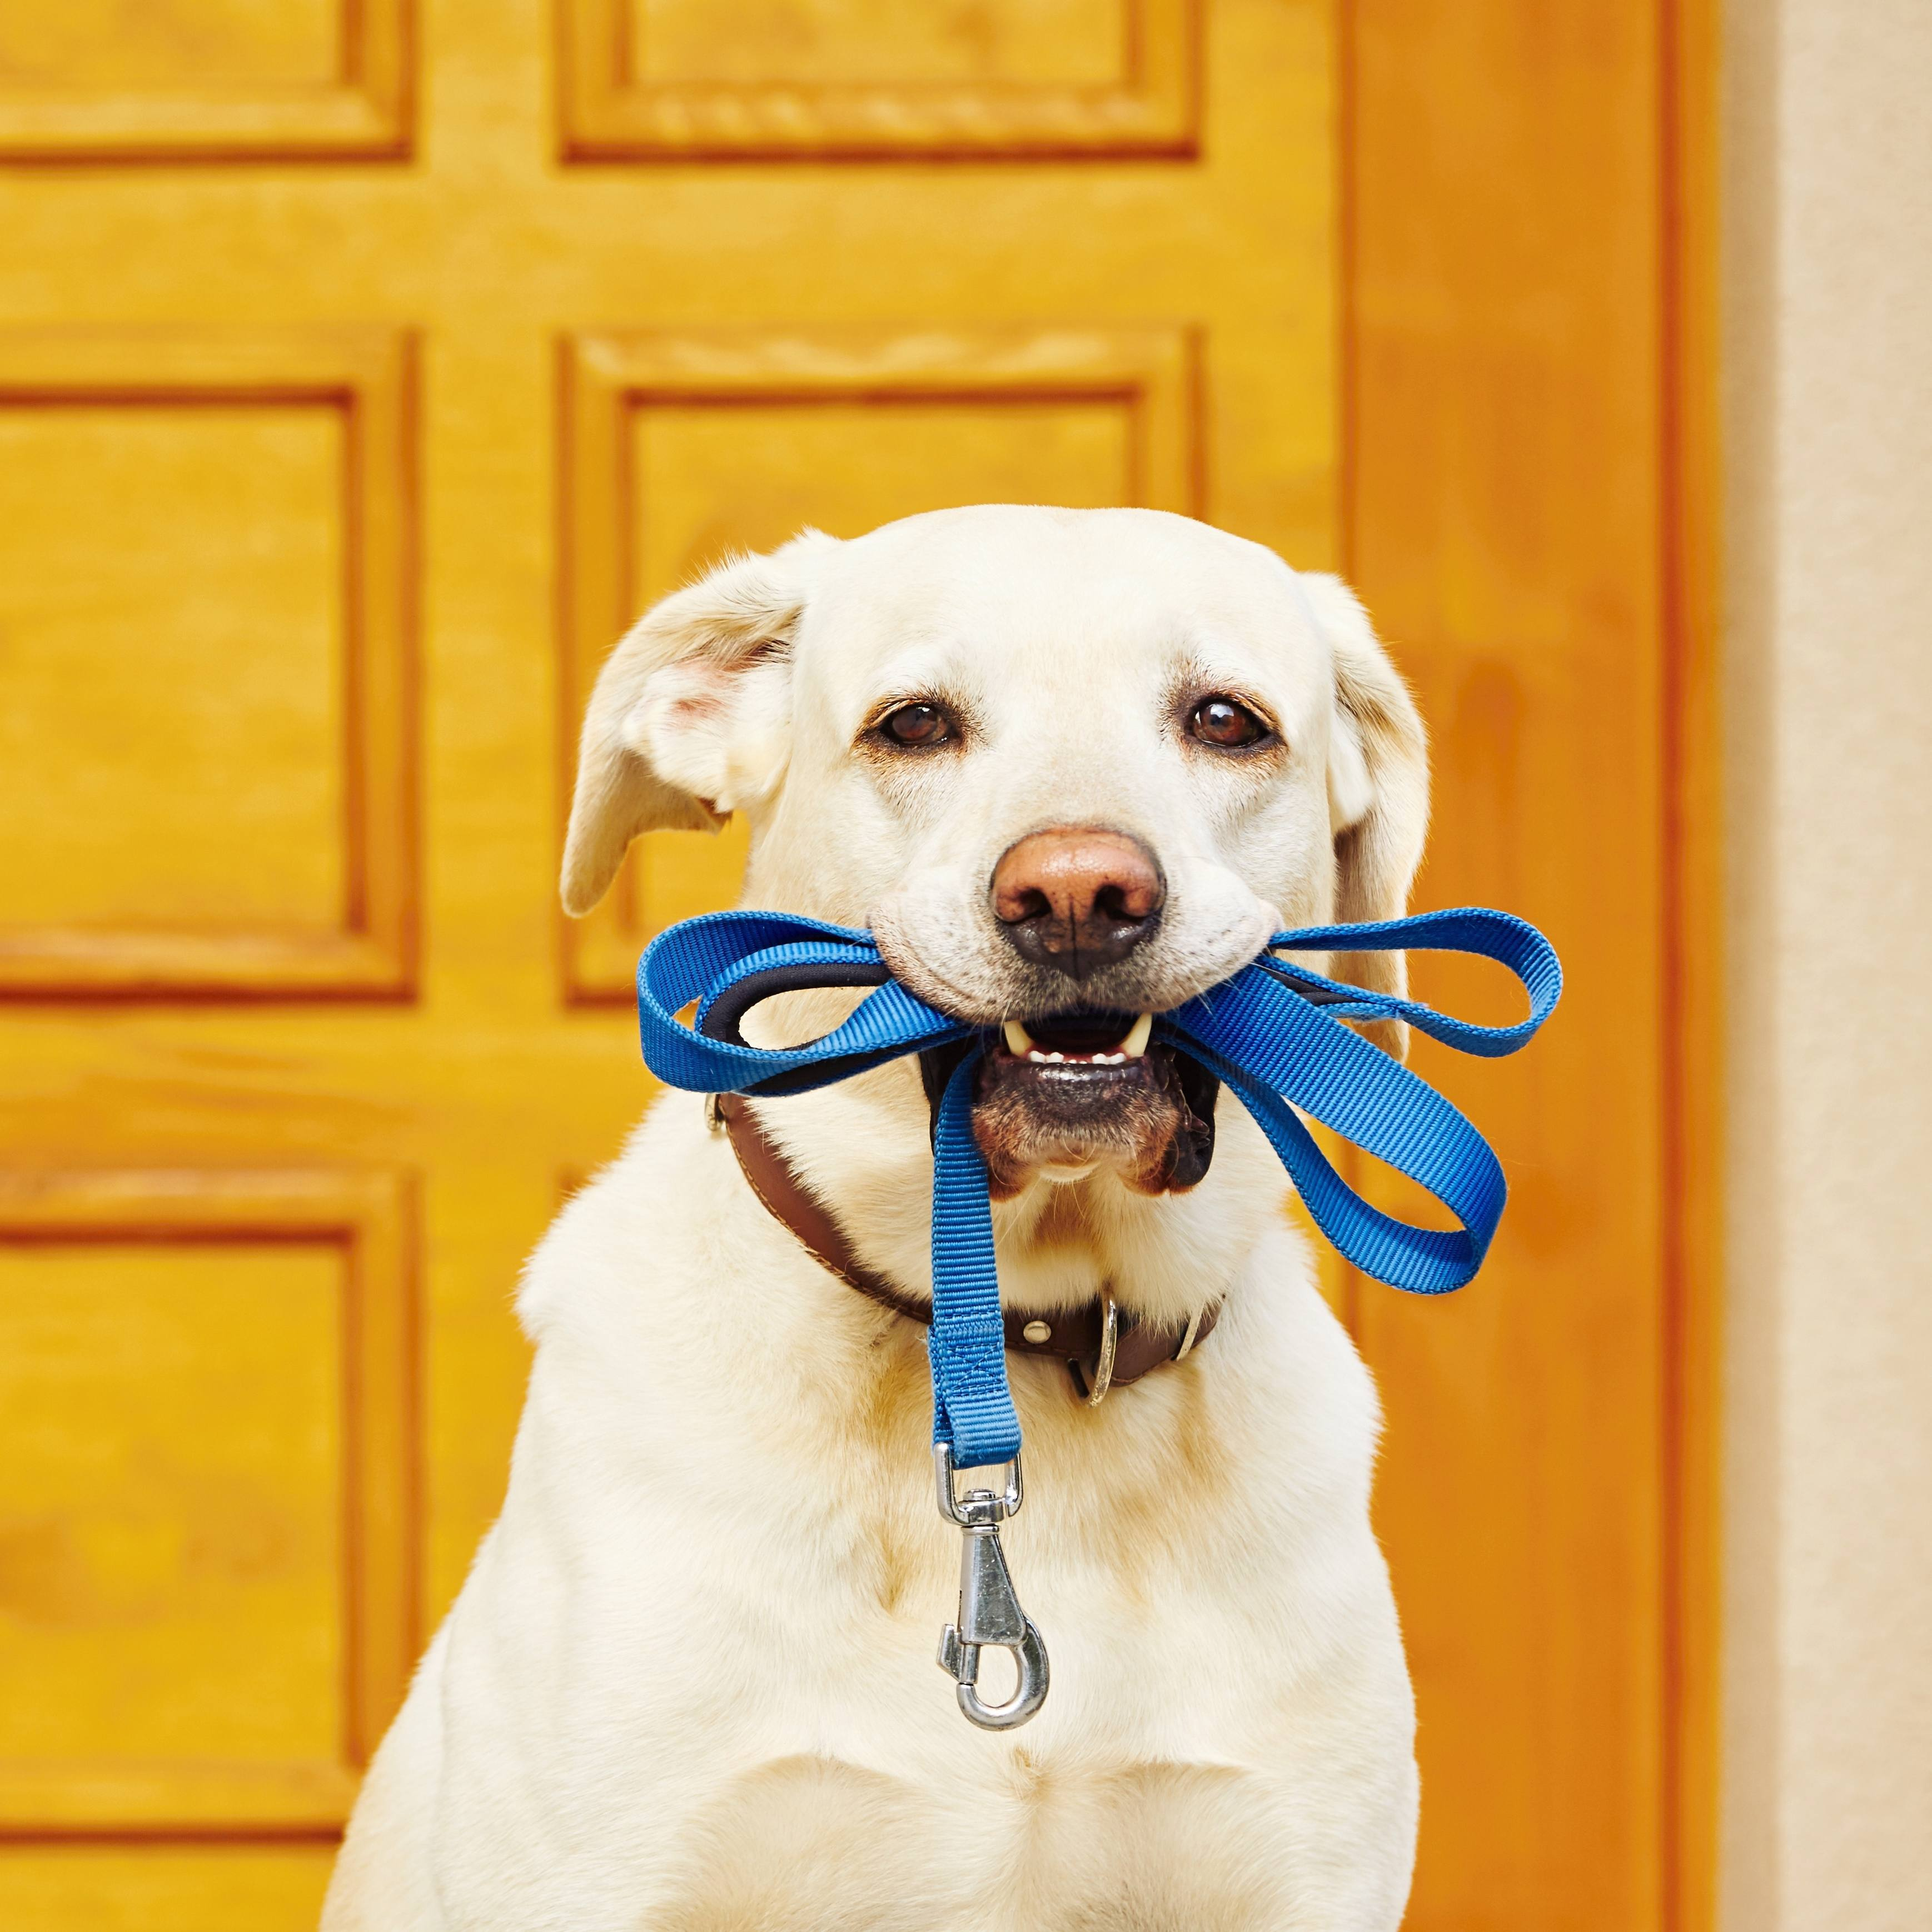 a Labrador retriever sitting in front of a door with its leash in its mouth, waiting to go for a walk